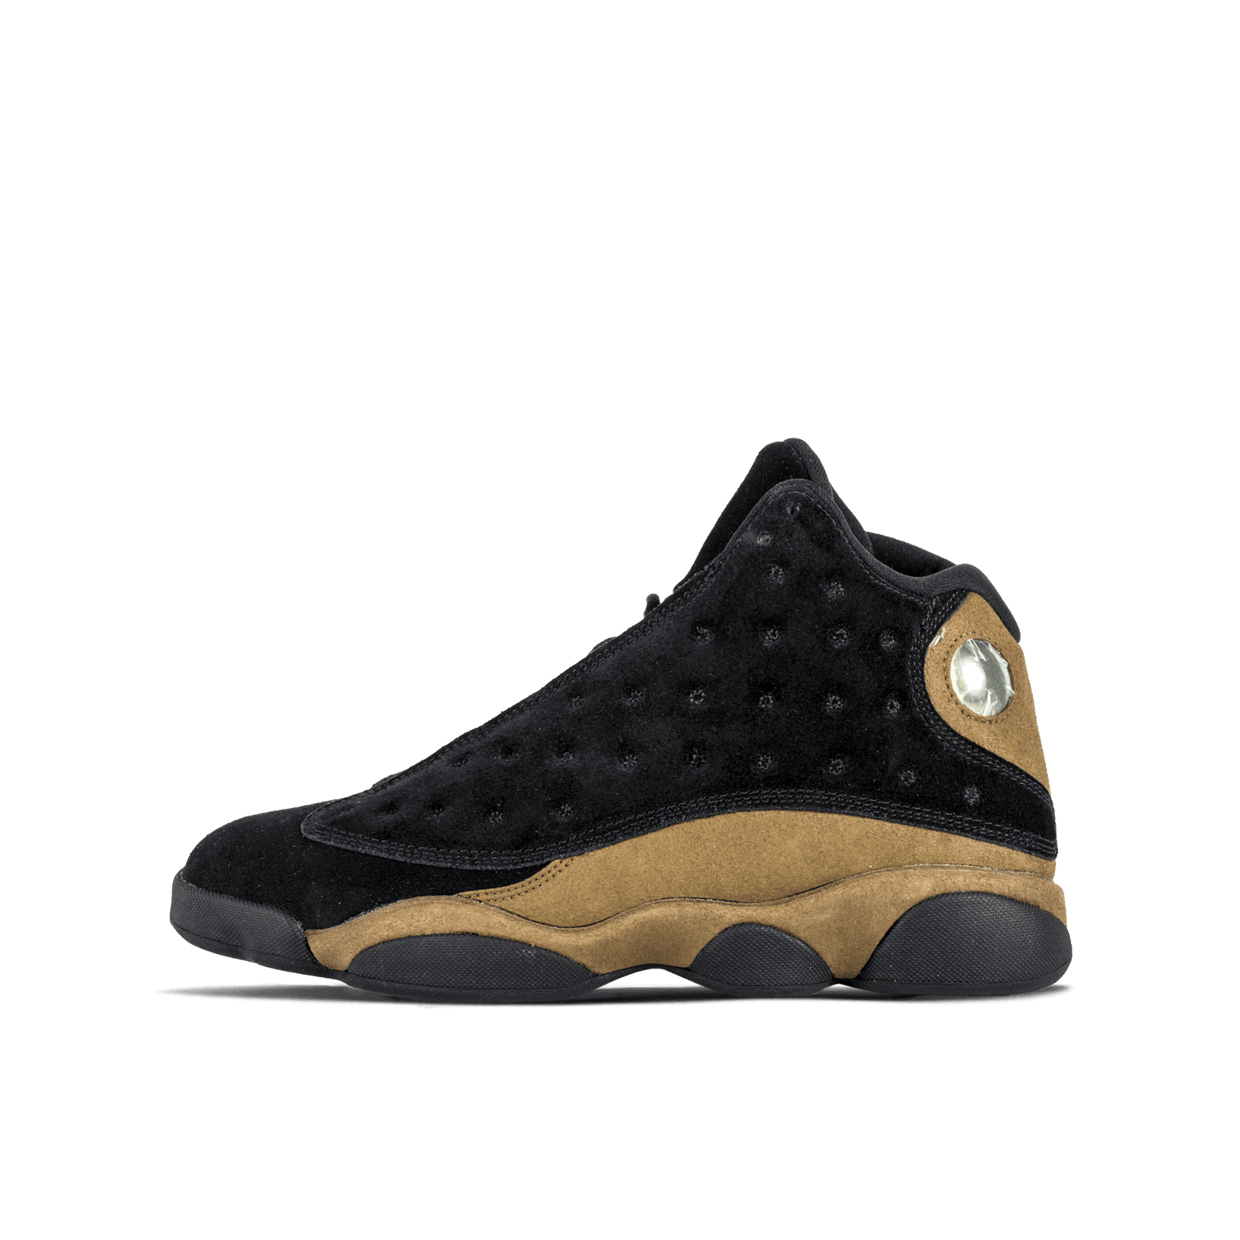 Air Jordan 13 Retro - Black